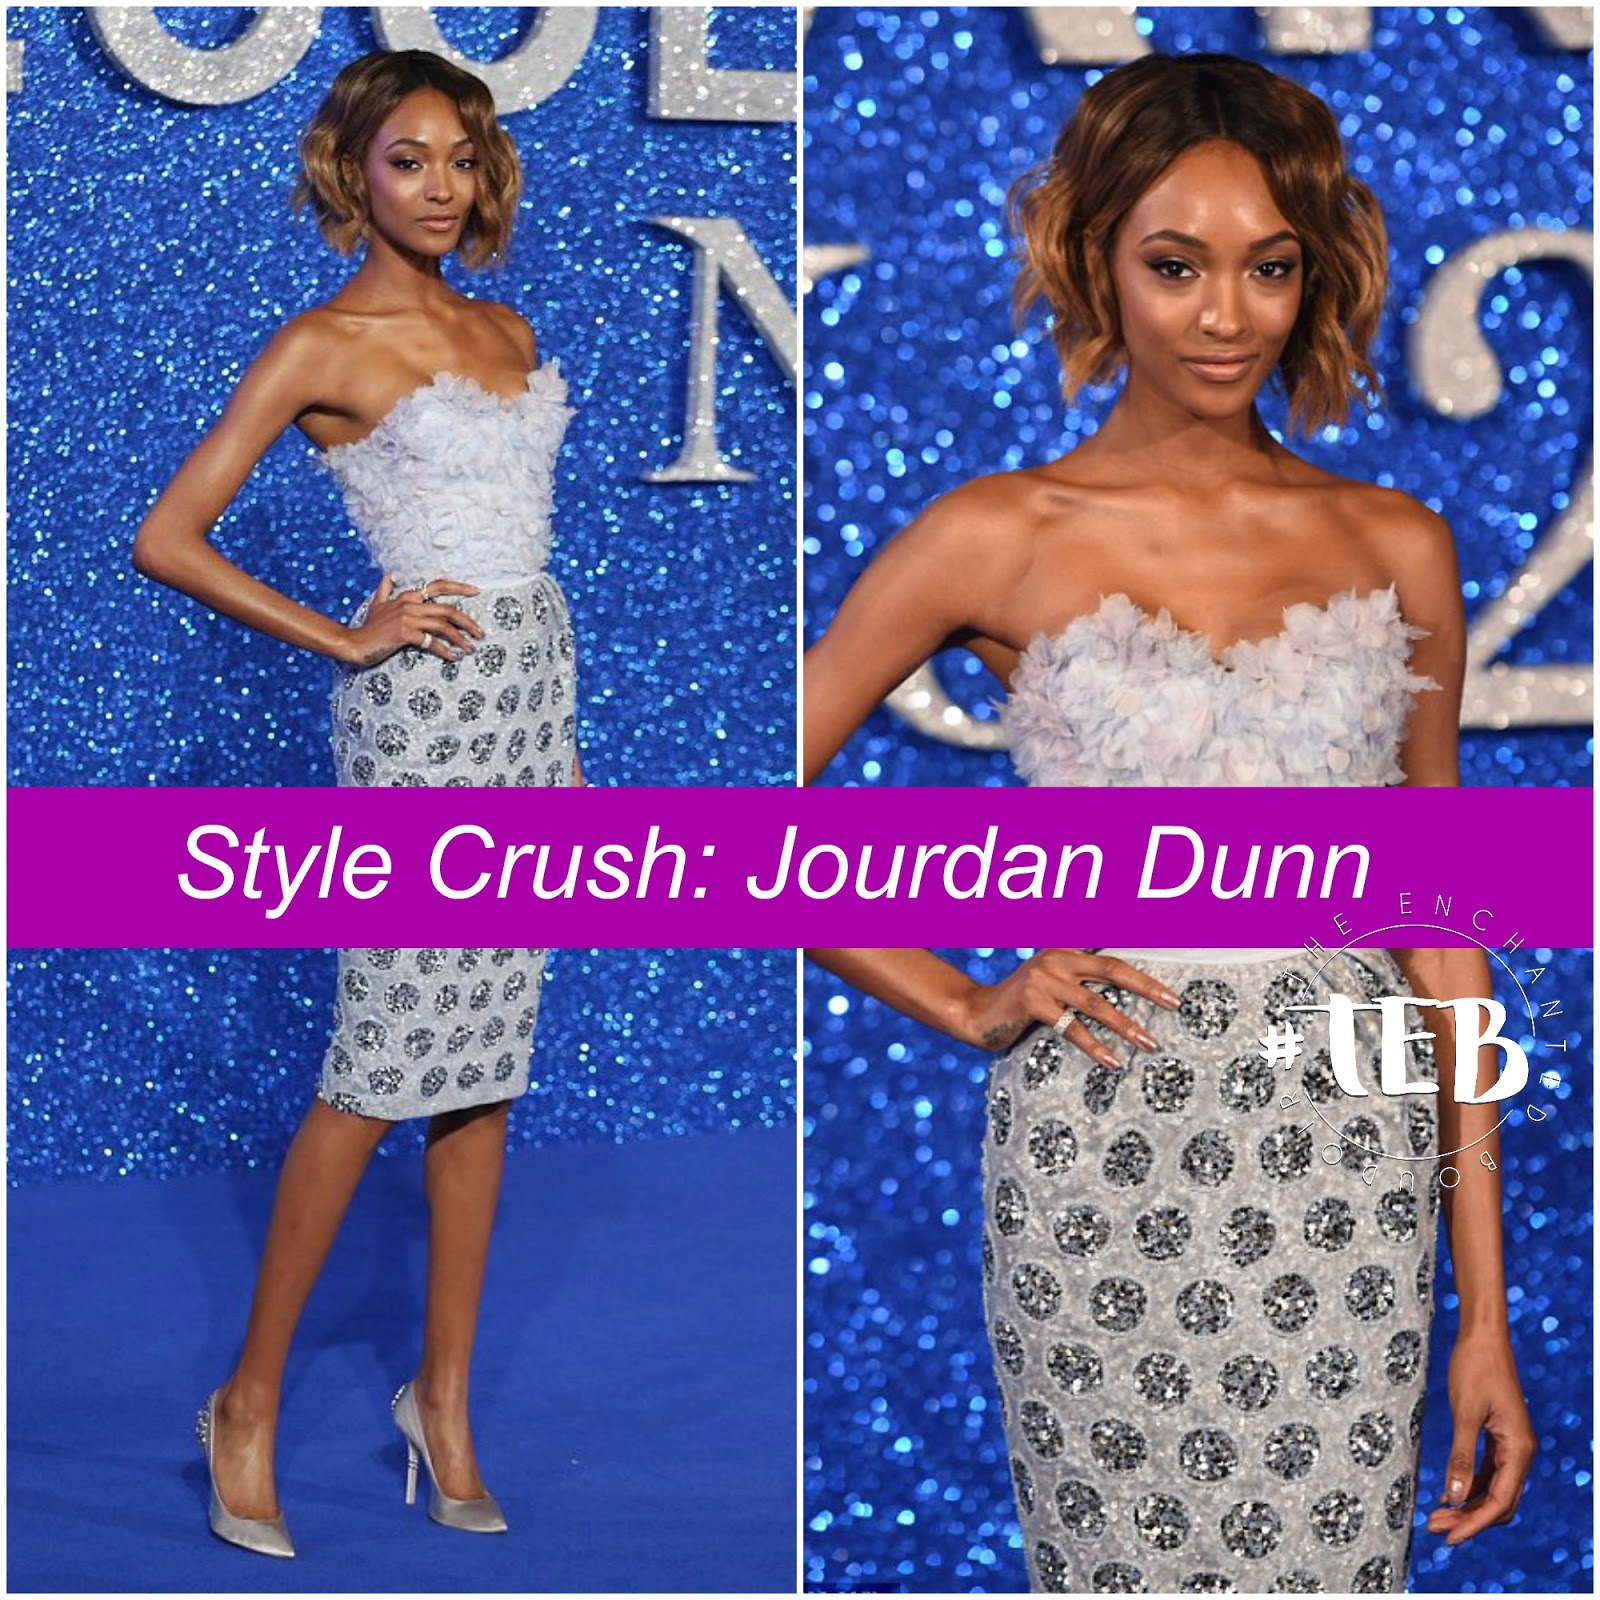 STYLE CRUSH: Jourdan Dunn at the Zoolander No. 2 Premiere in London